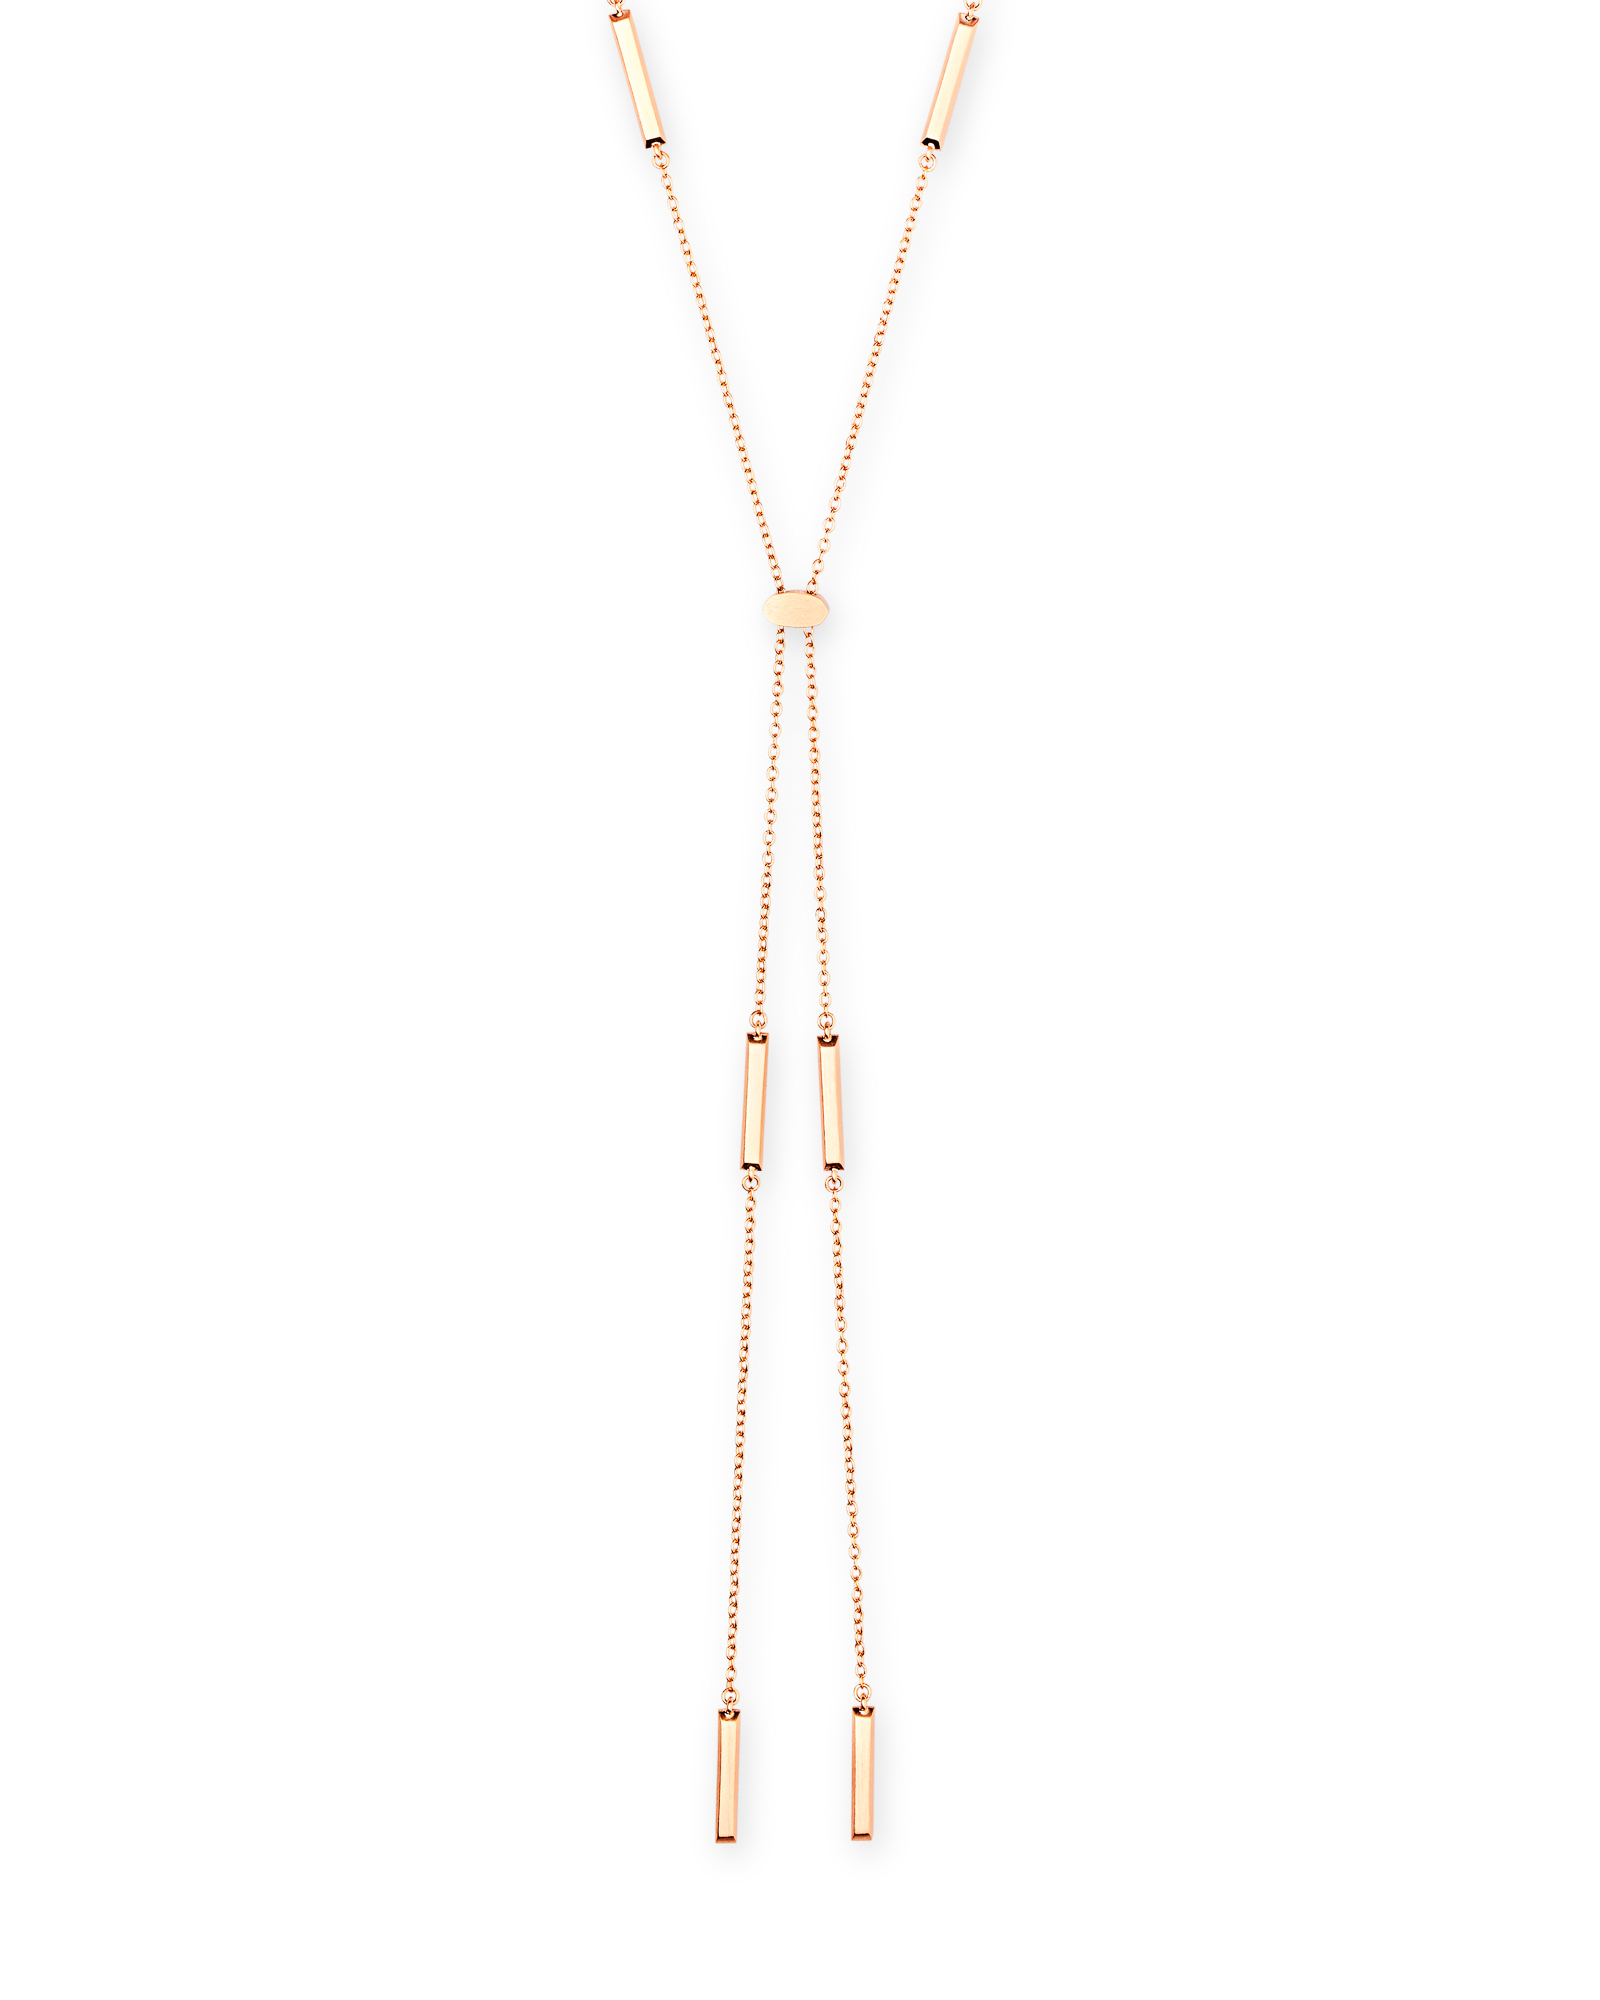 Kendra Scott Josephine Y Necklace in Rose Gold - 4217703325